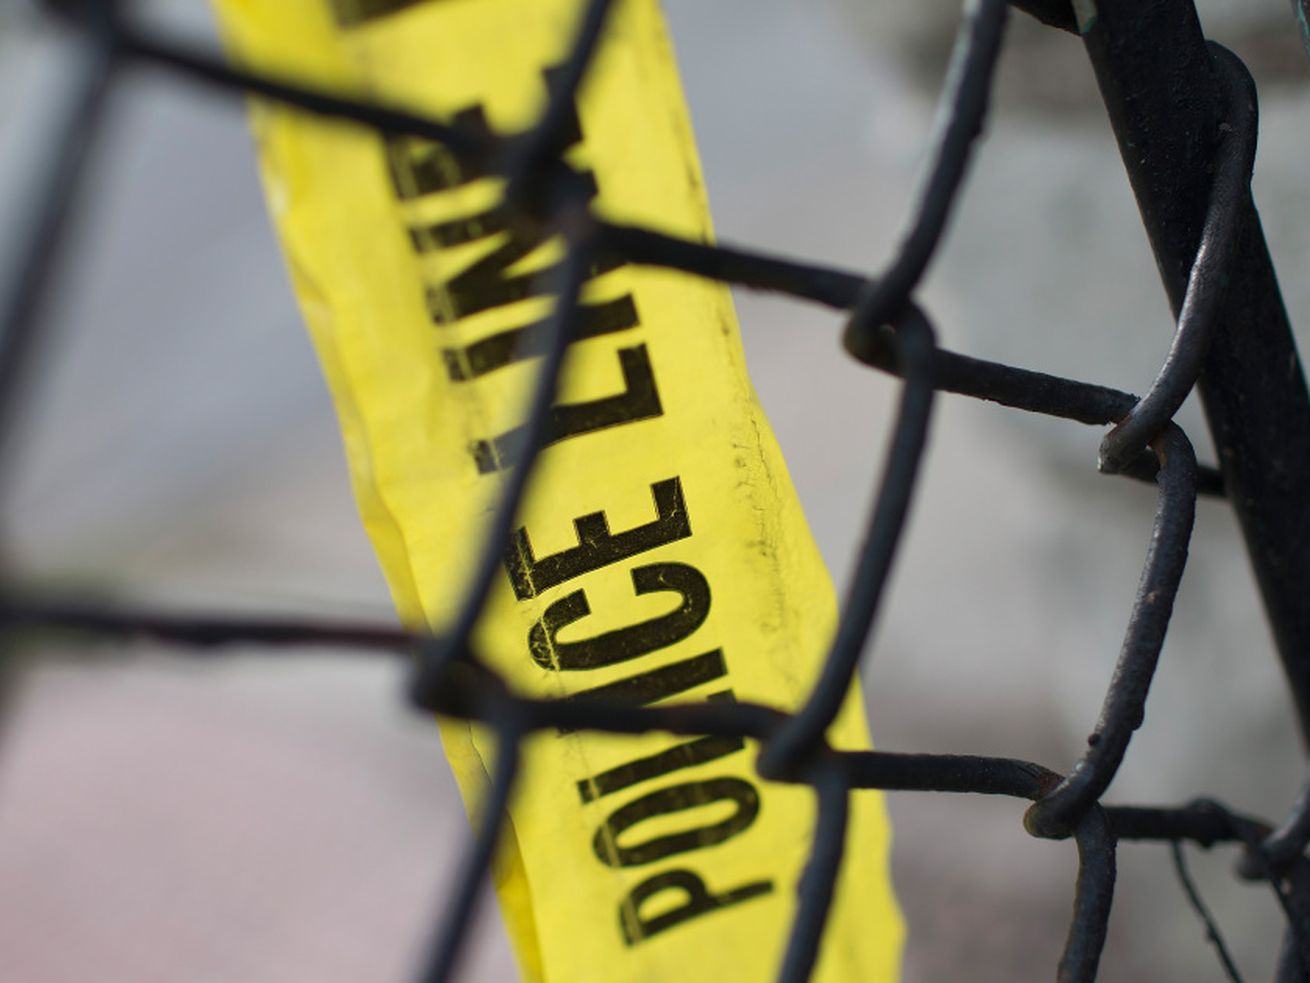 A 17-year-old was shot April 13, 2021 in Gresham on the South Side.